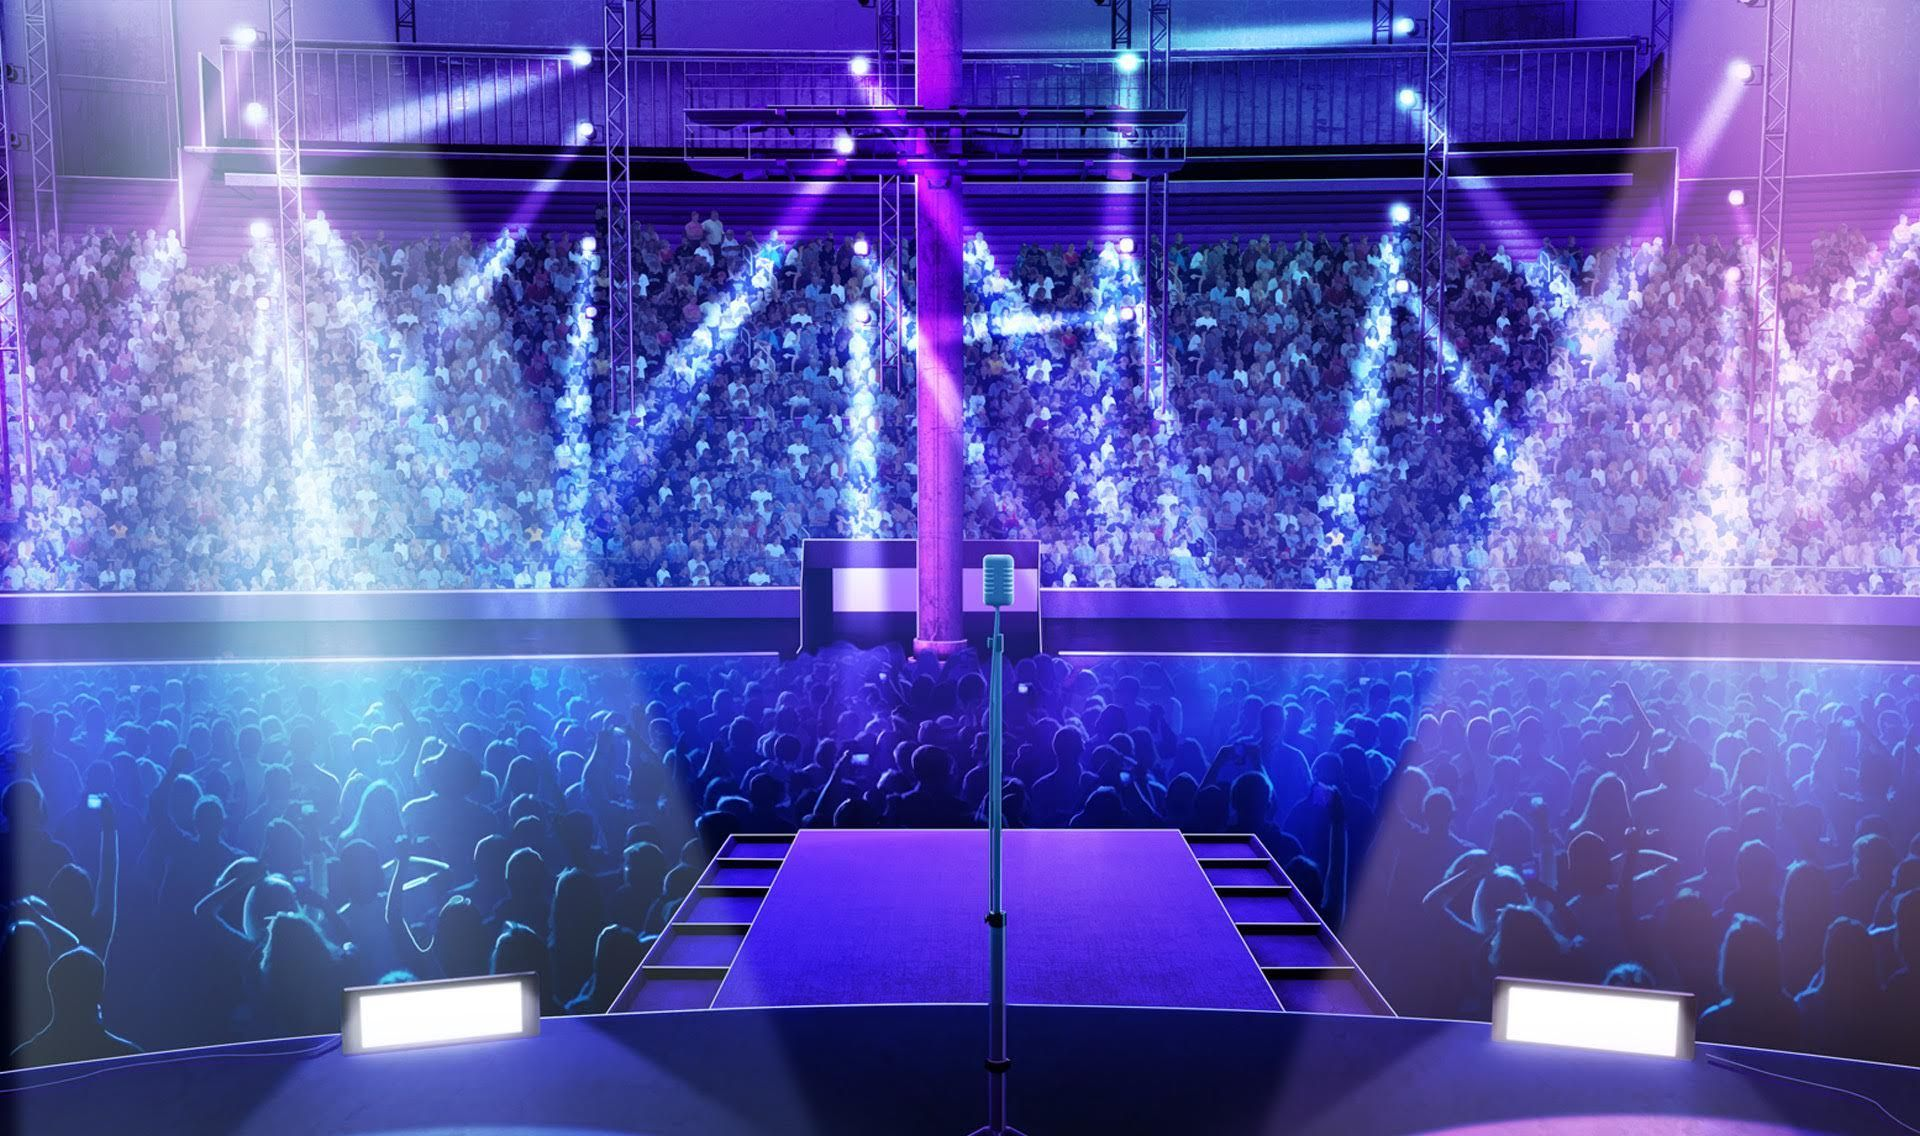 Int on rock concert stage night episode pinterest concert stage anime scenery and anime - Discoteca ozona madrid ...